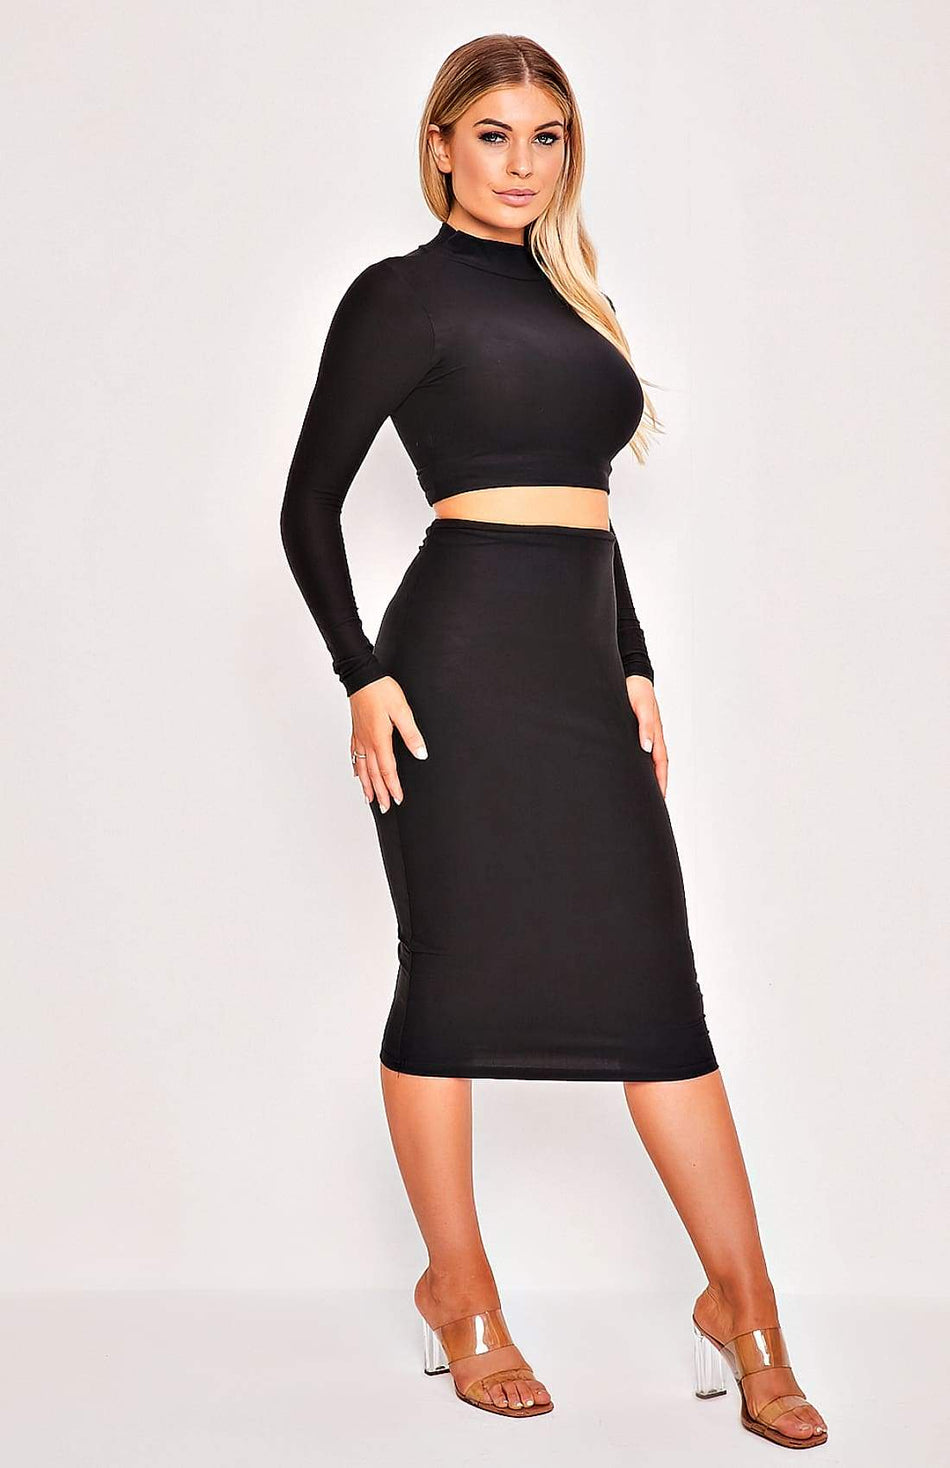 Black High Neck Long Sleeve Two Piece Top & Skirt Set